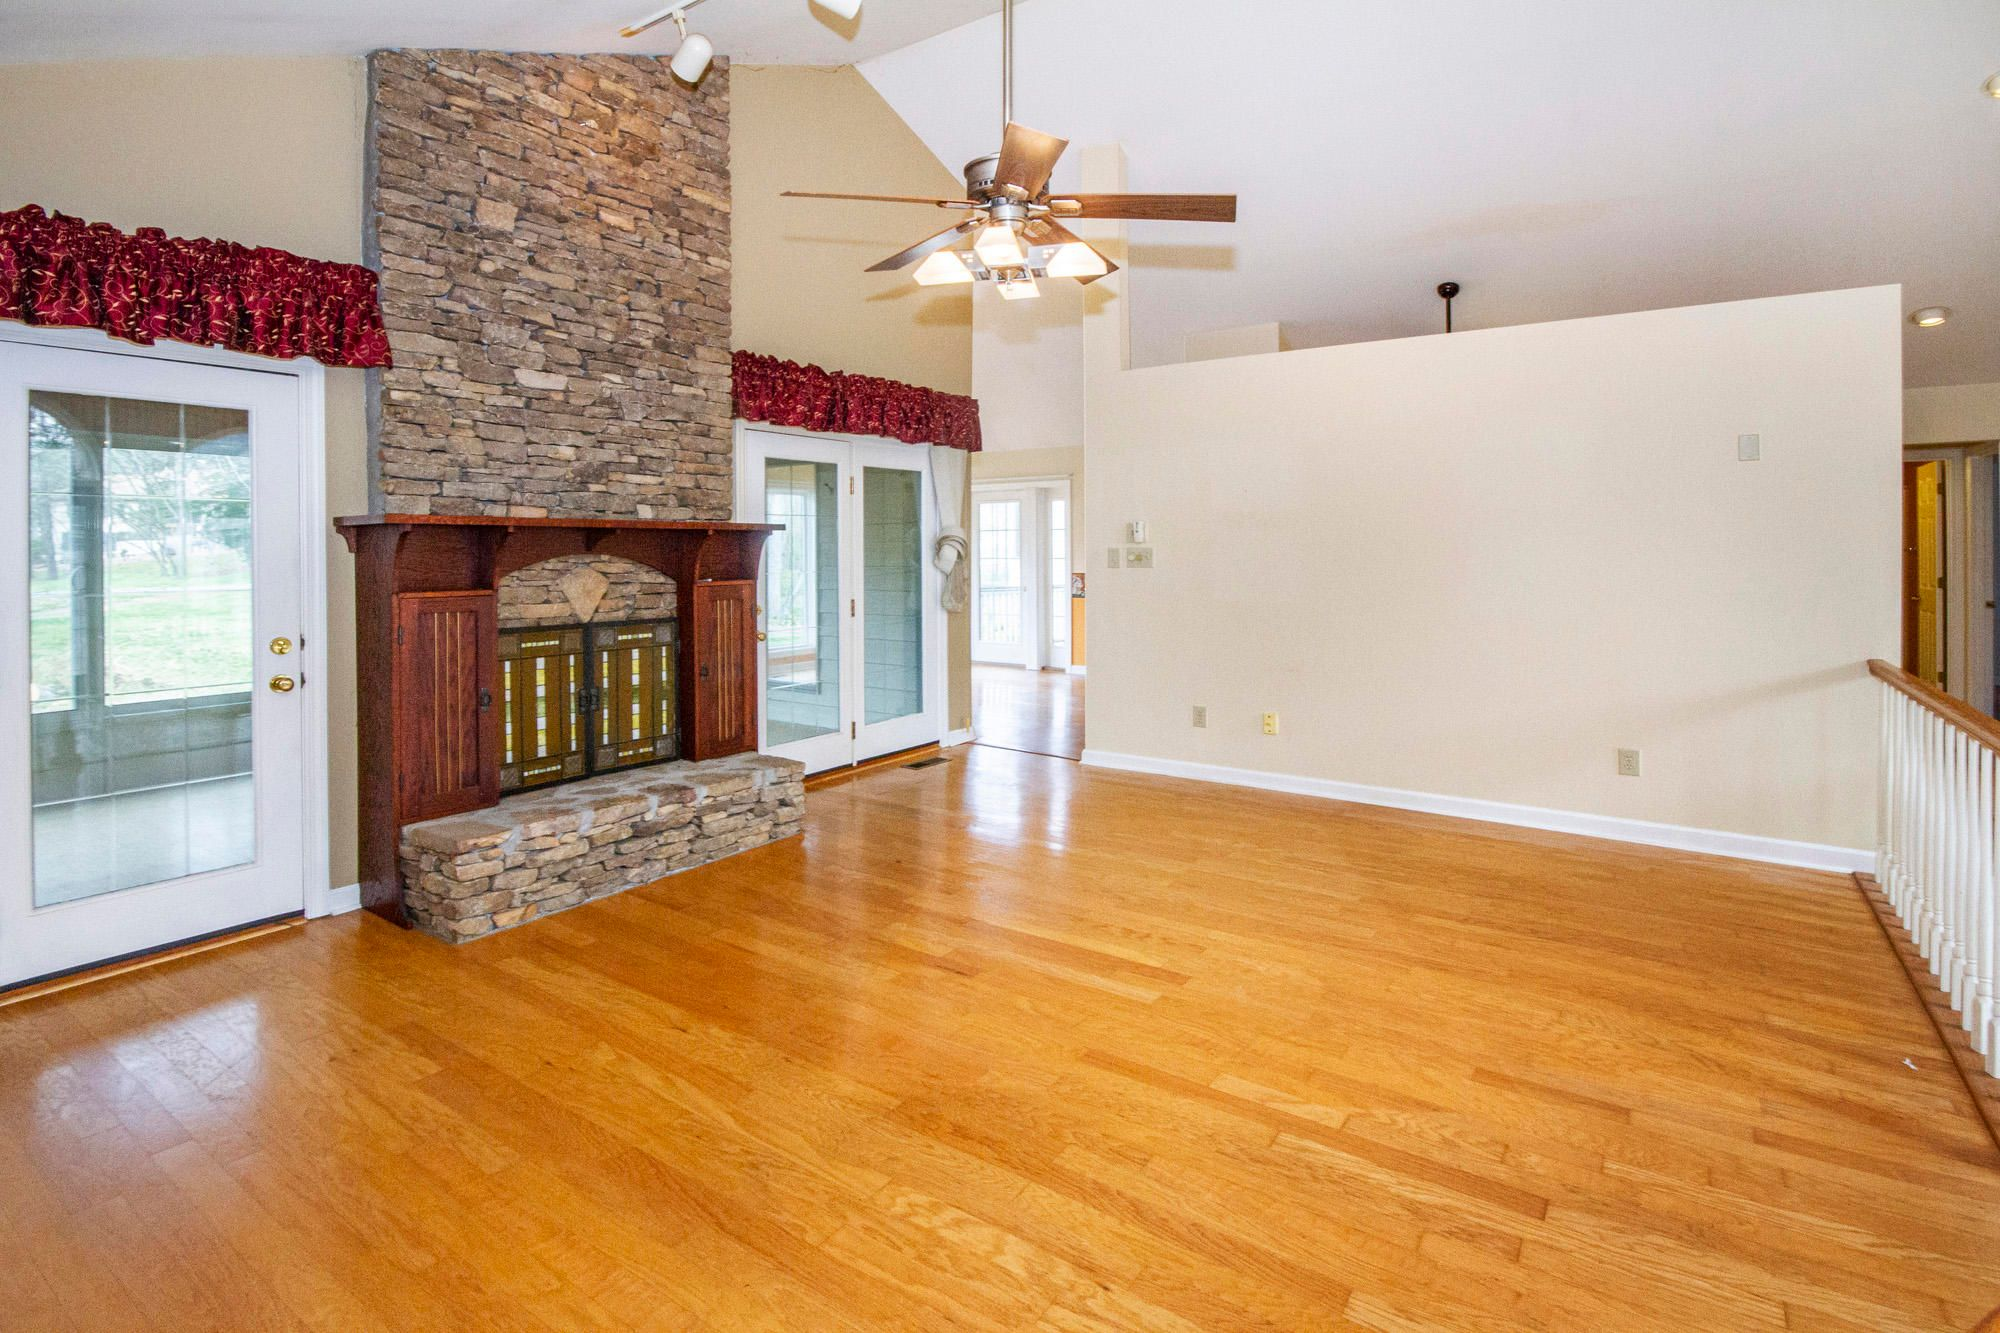 Cathedral Ceiling & Gas Fireplace